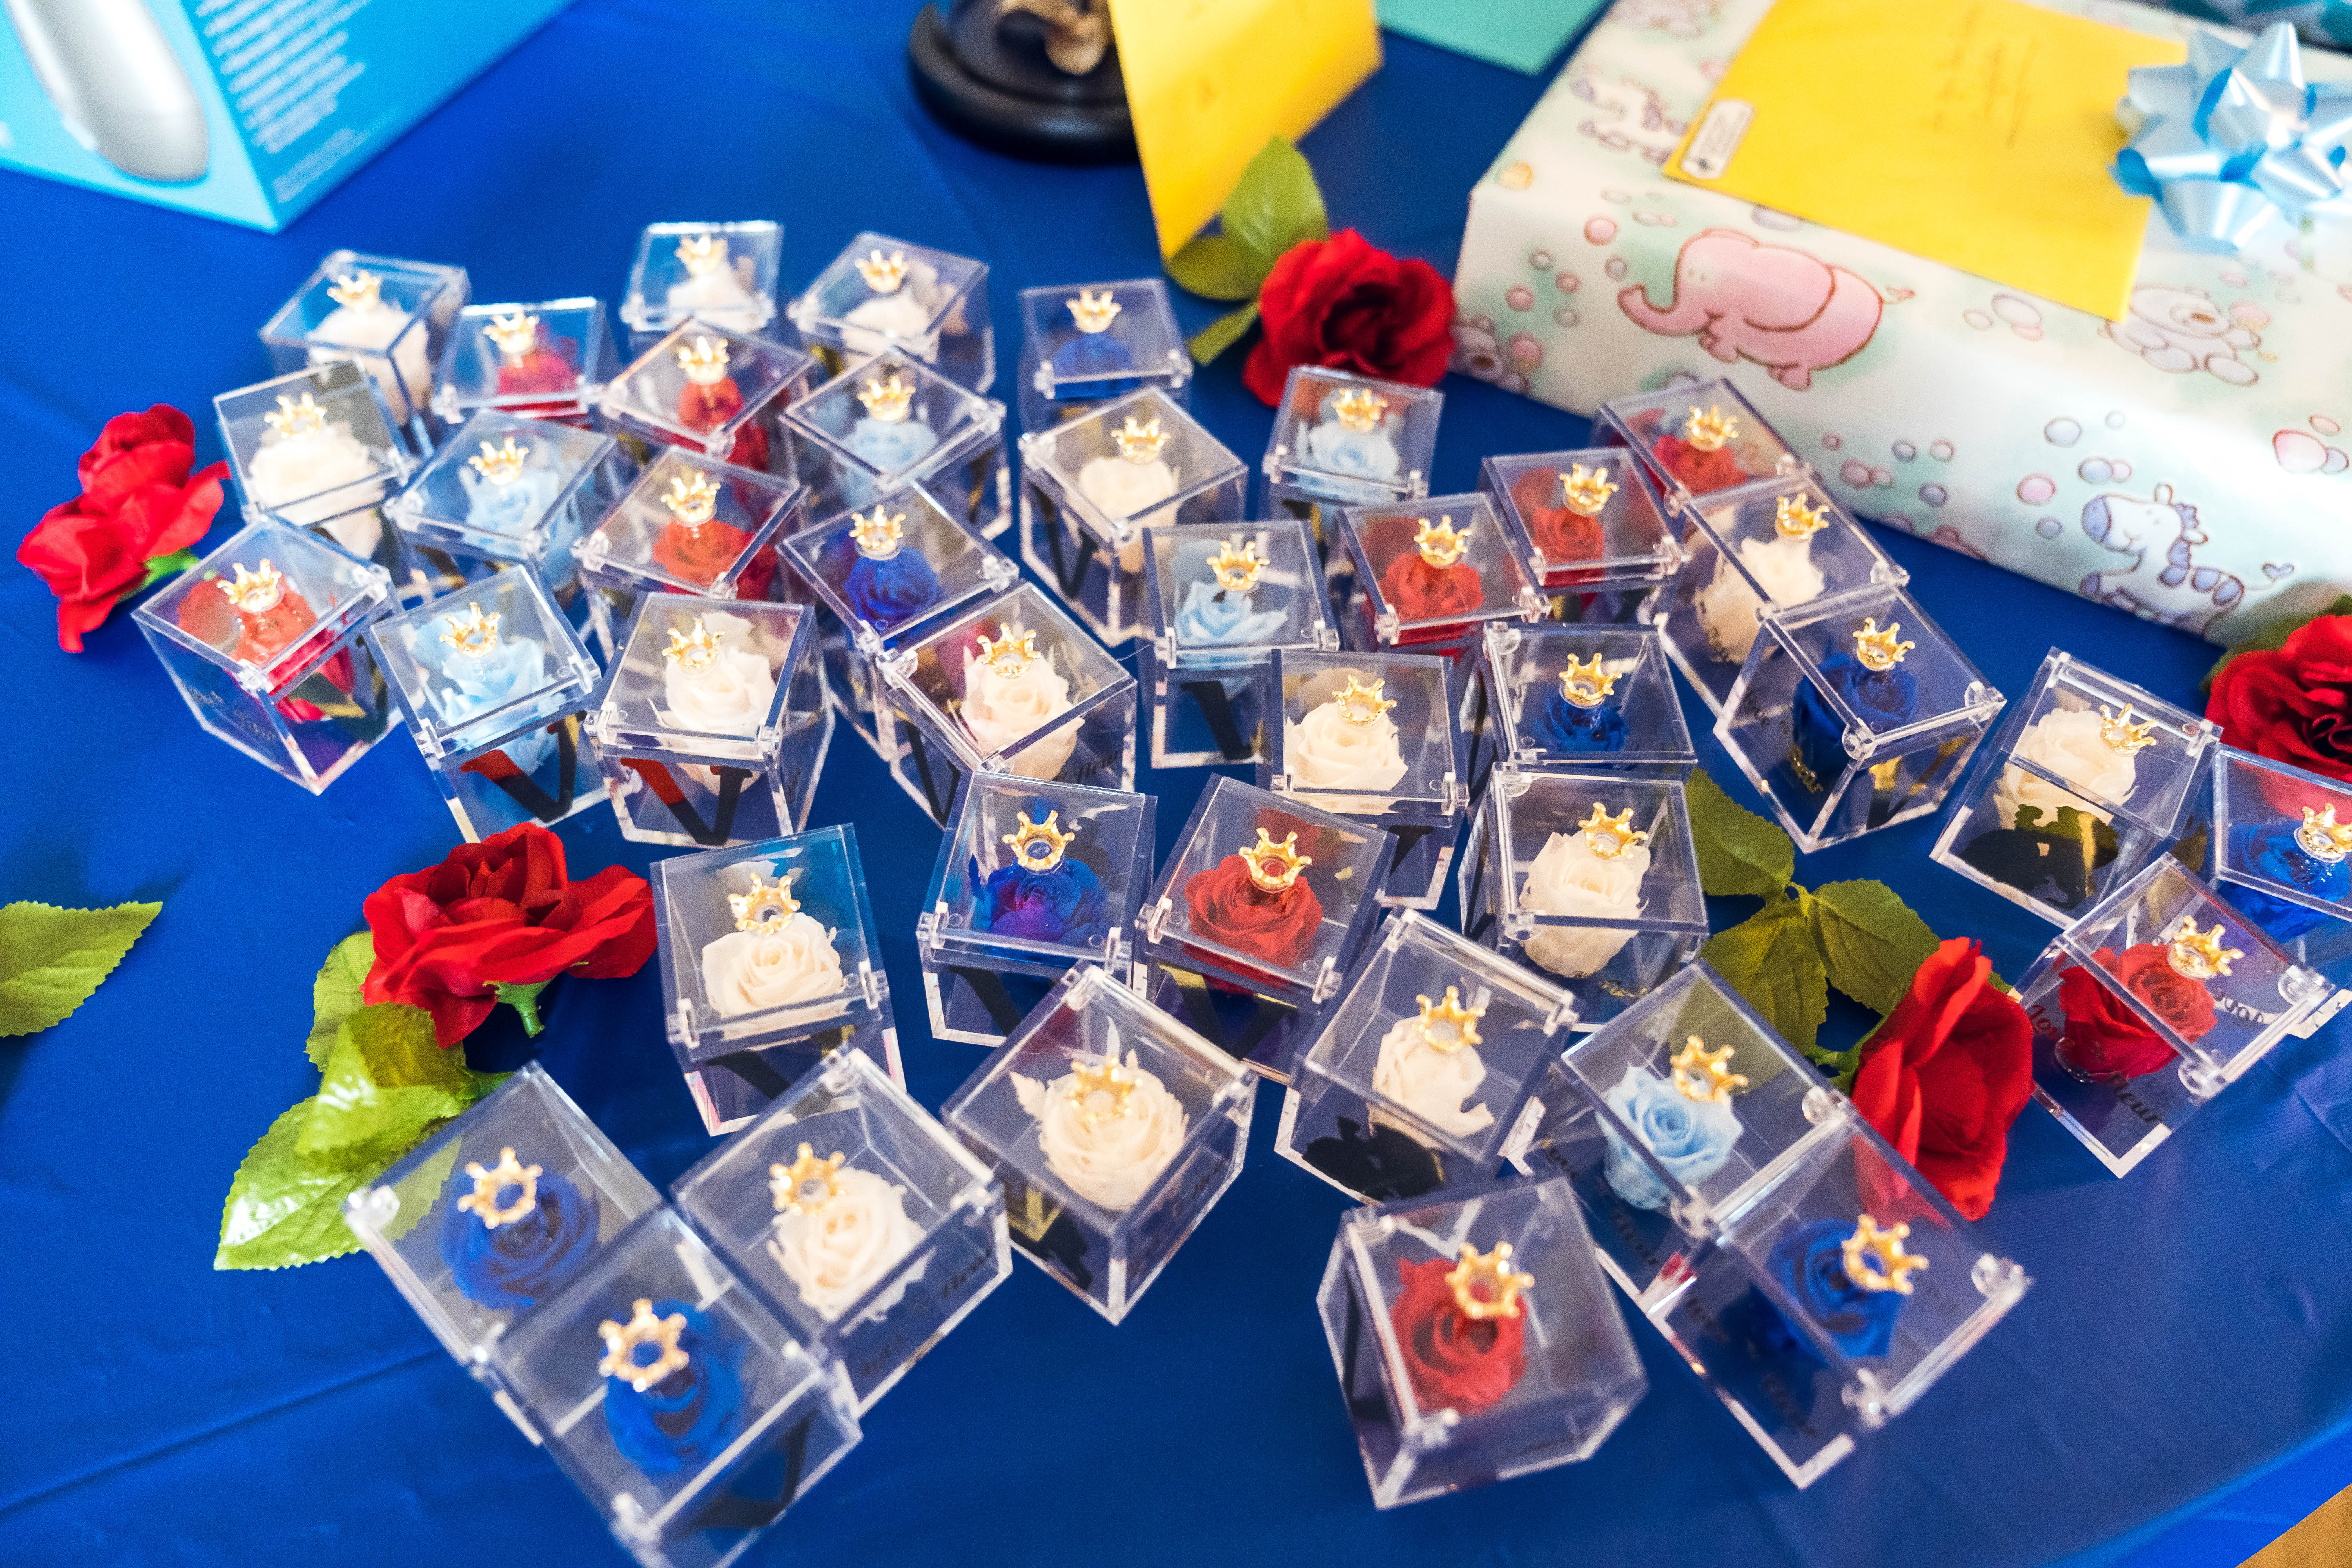 Iesha of LivingLesh sharing single rose party favors for beauty and the beast baby shower